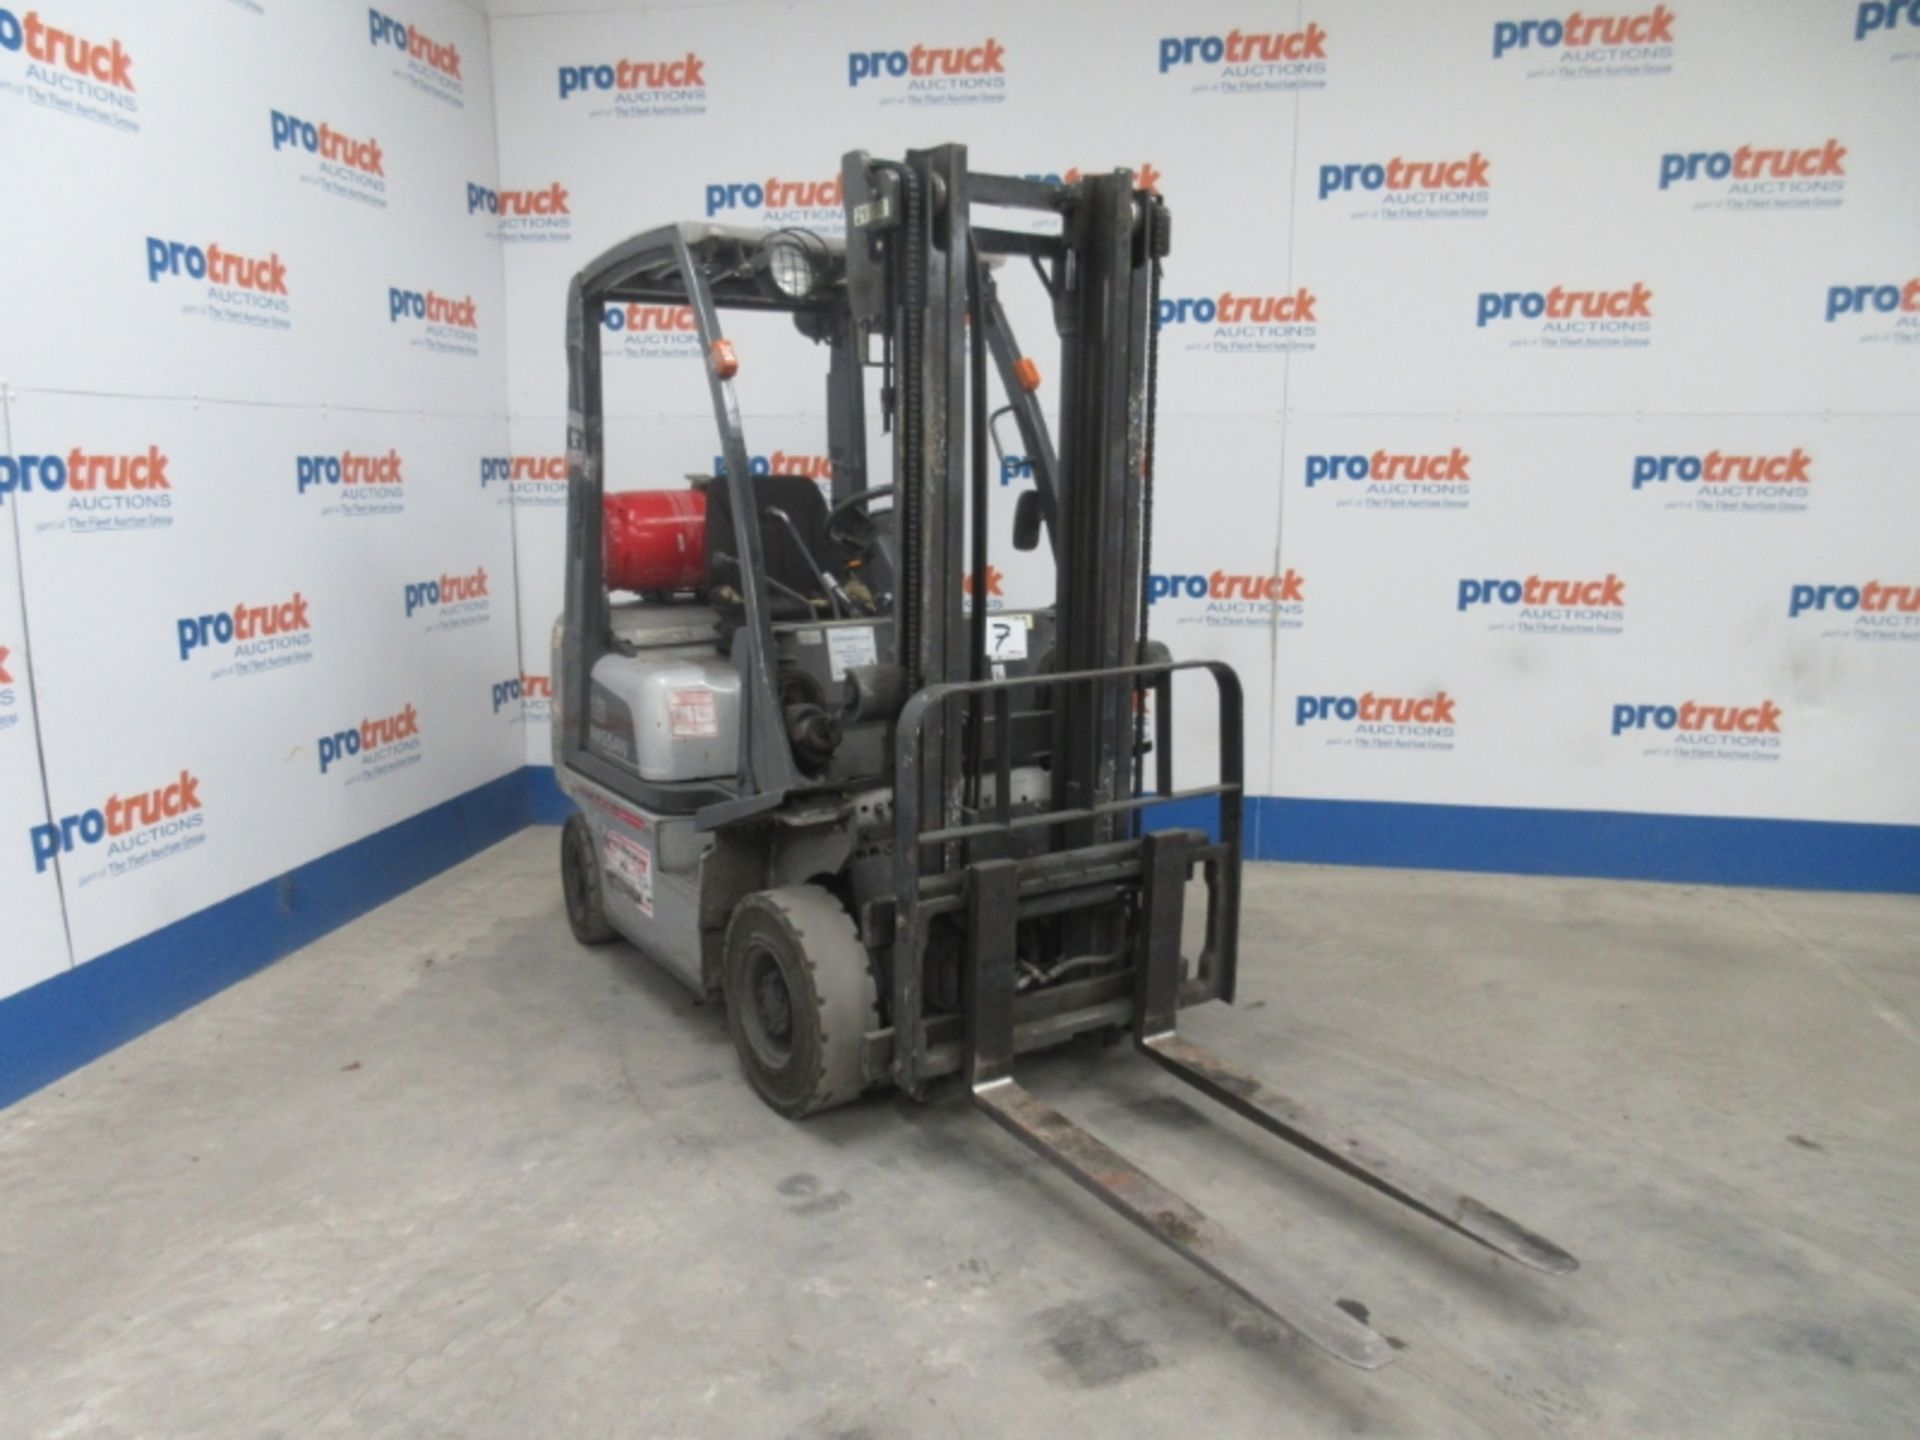 Lot 7 - NISSAN PD01A15PQ Plant LPG / CNG - VIN: PD01E705417 - Year: 2007 - 6,024 Hours - Duplex Forklift,